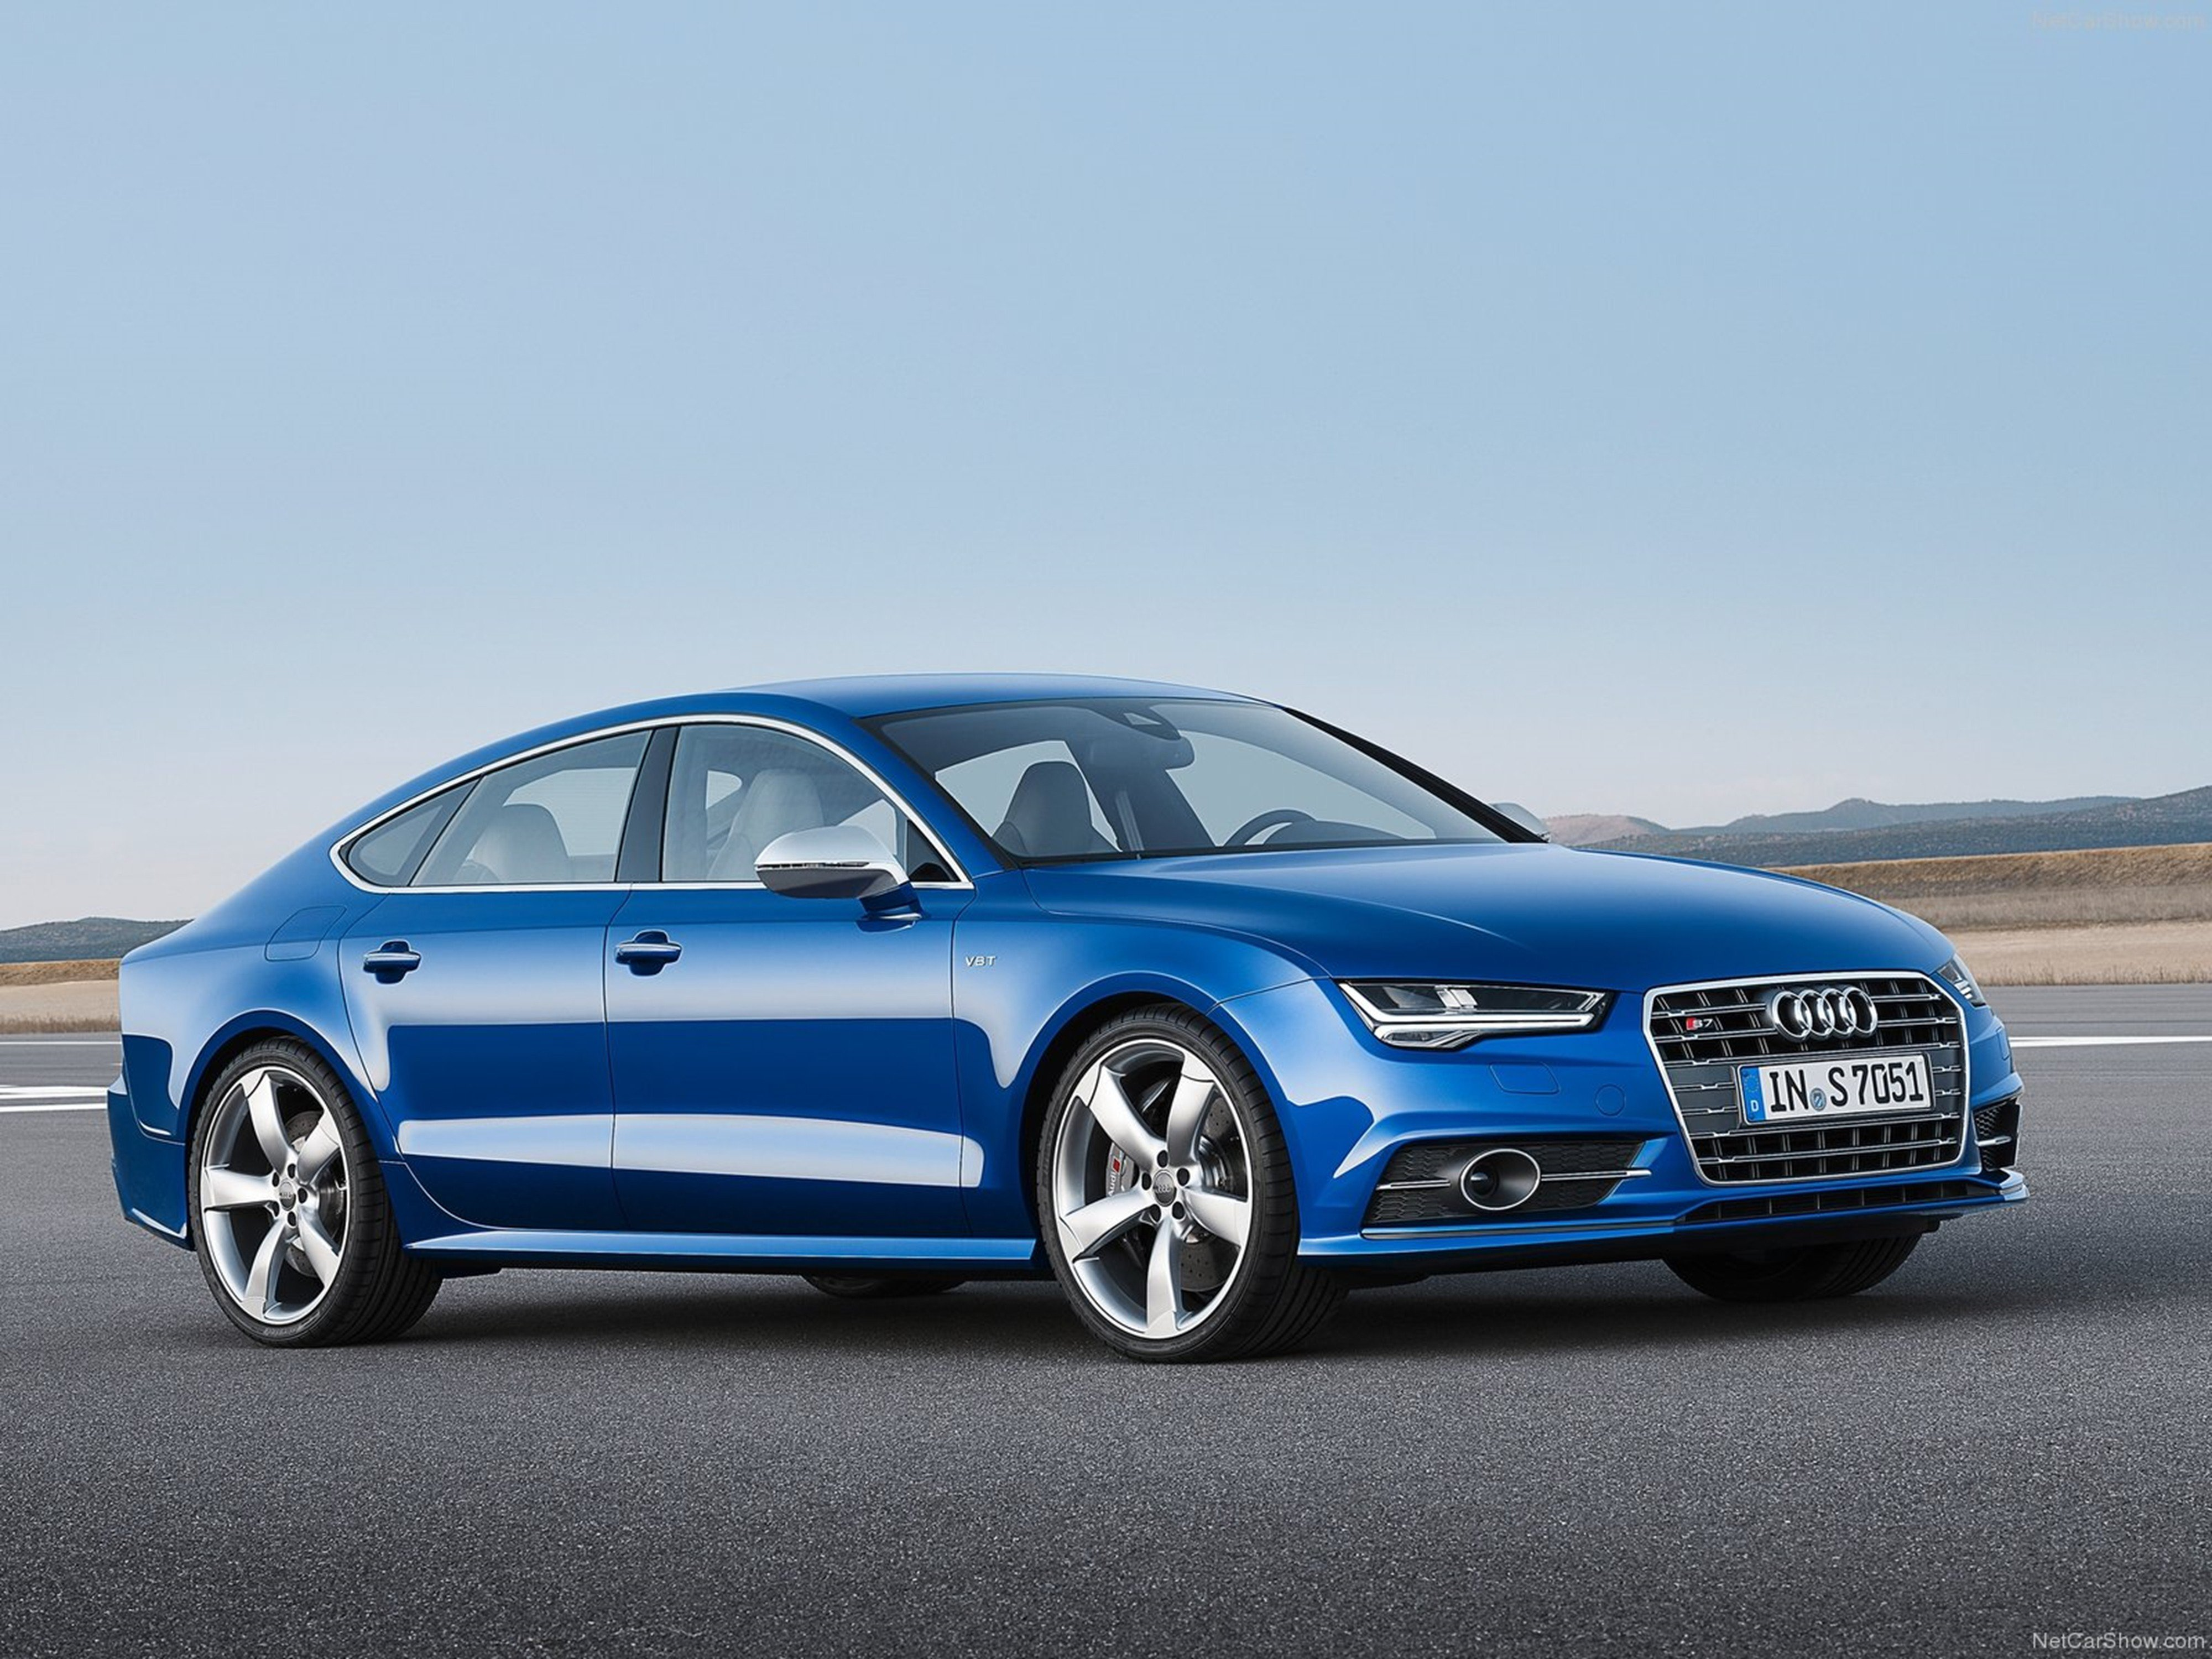 audi s7 sportback 2015 car germany supercar blue wallpaper 4000x3000 wallpaper 4000x3000. Black Bedroom Furniture Sets. Home Design Ideas